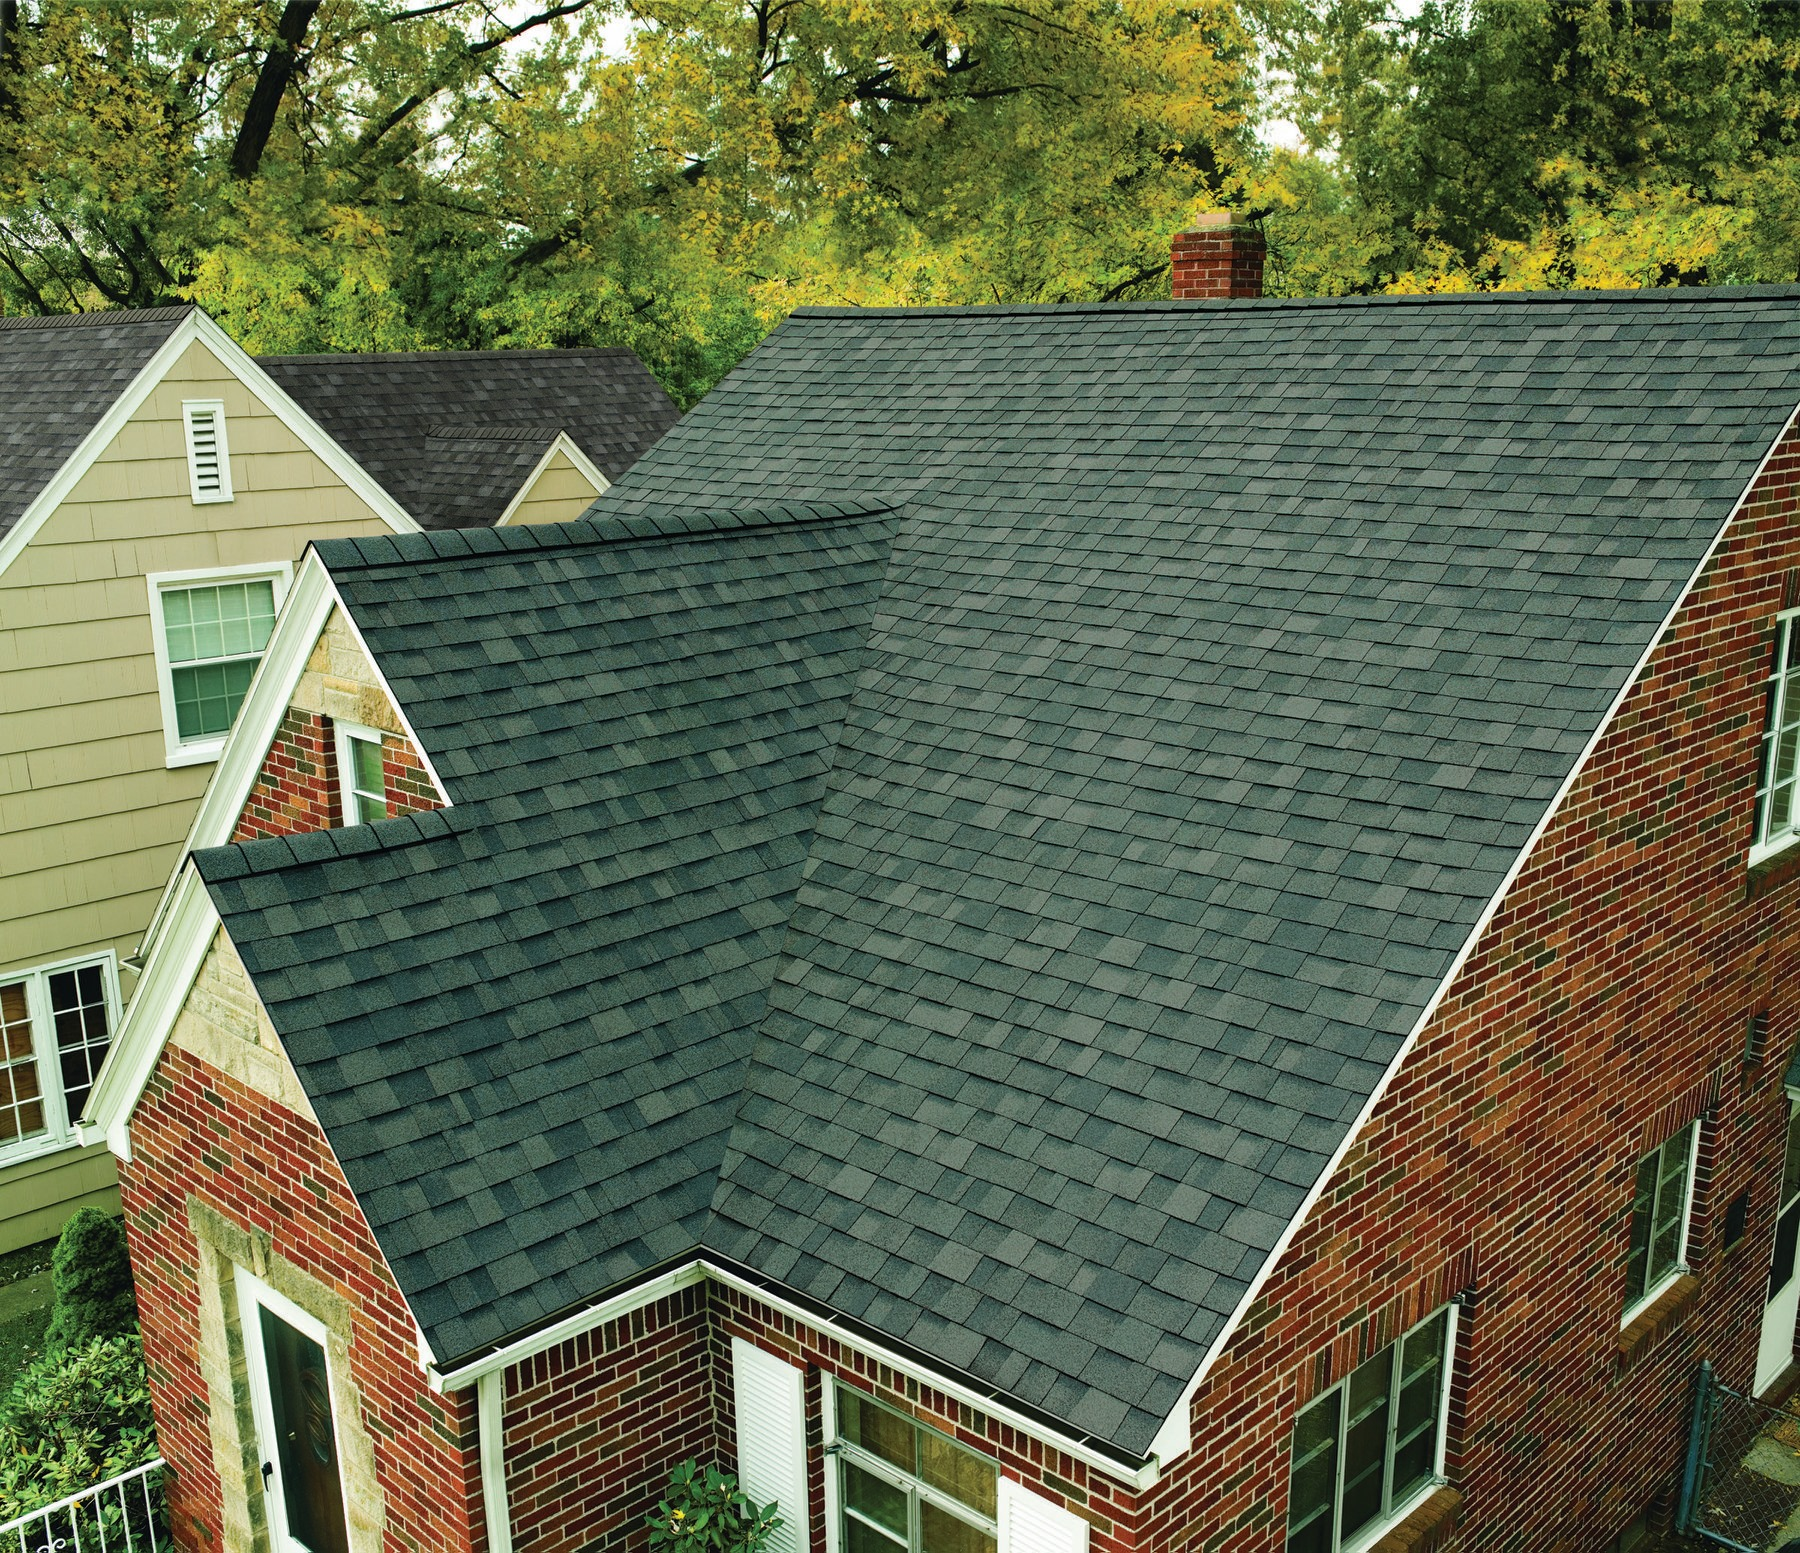 How Do I Select the Right Material for My Roof?